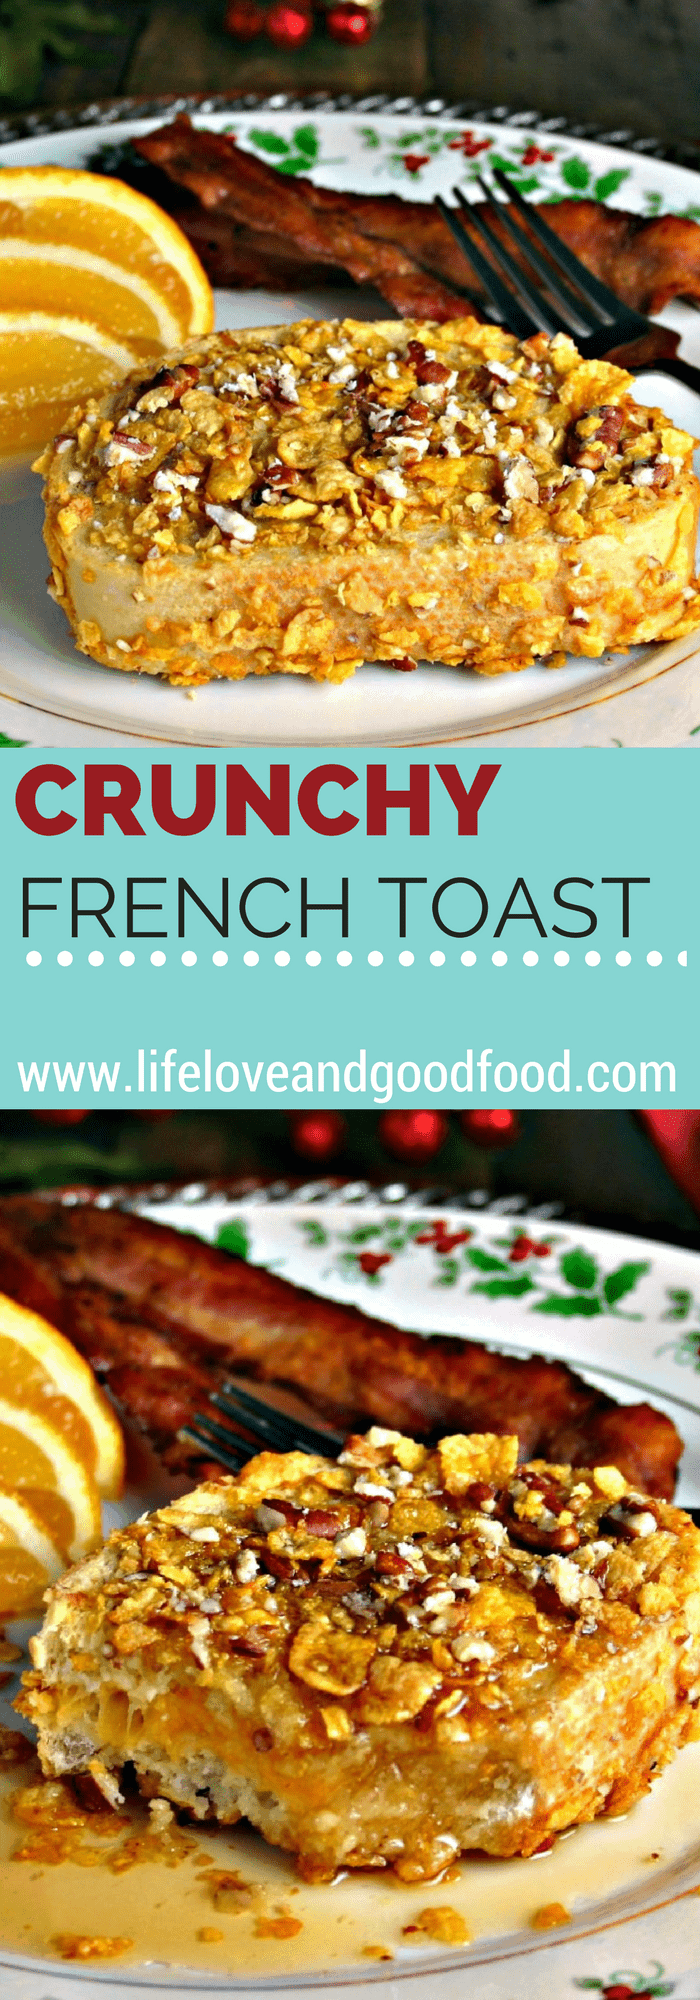 A plate of Crunchy French Toast on a table